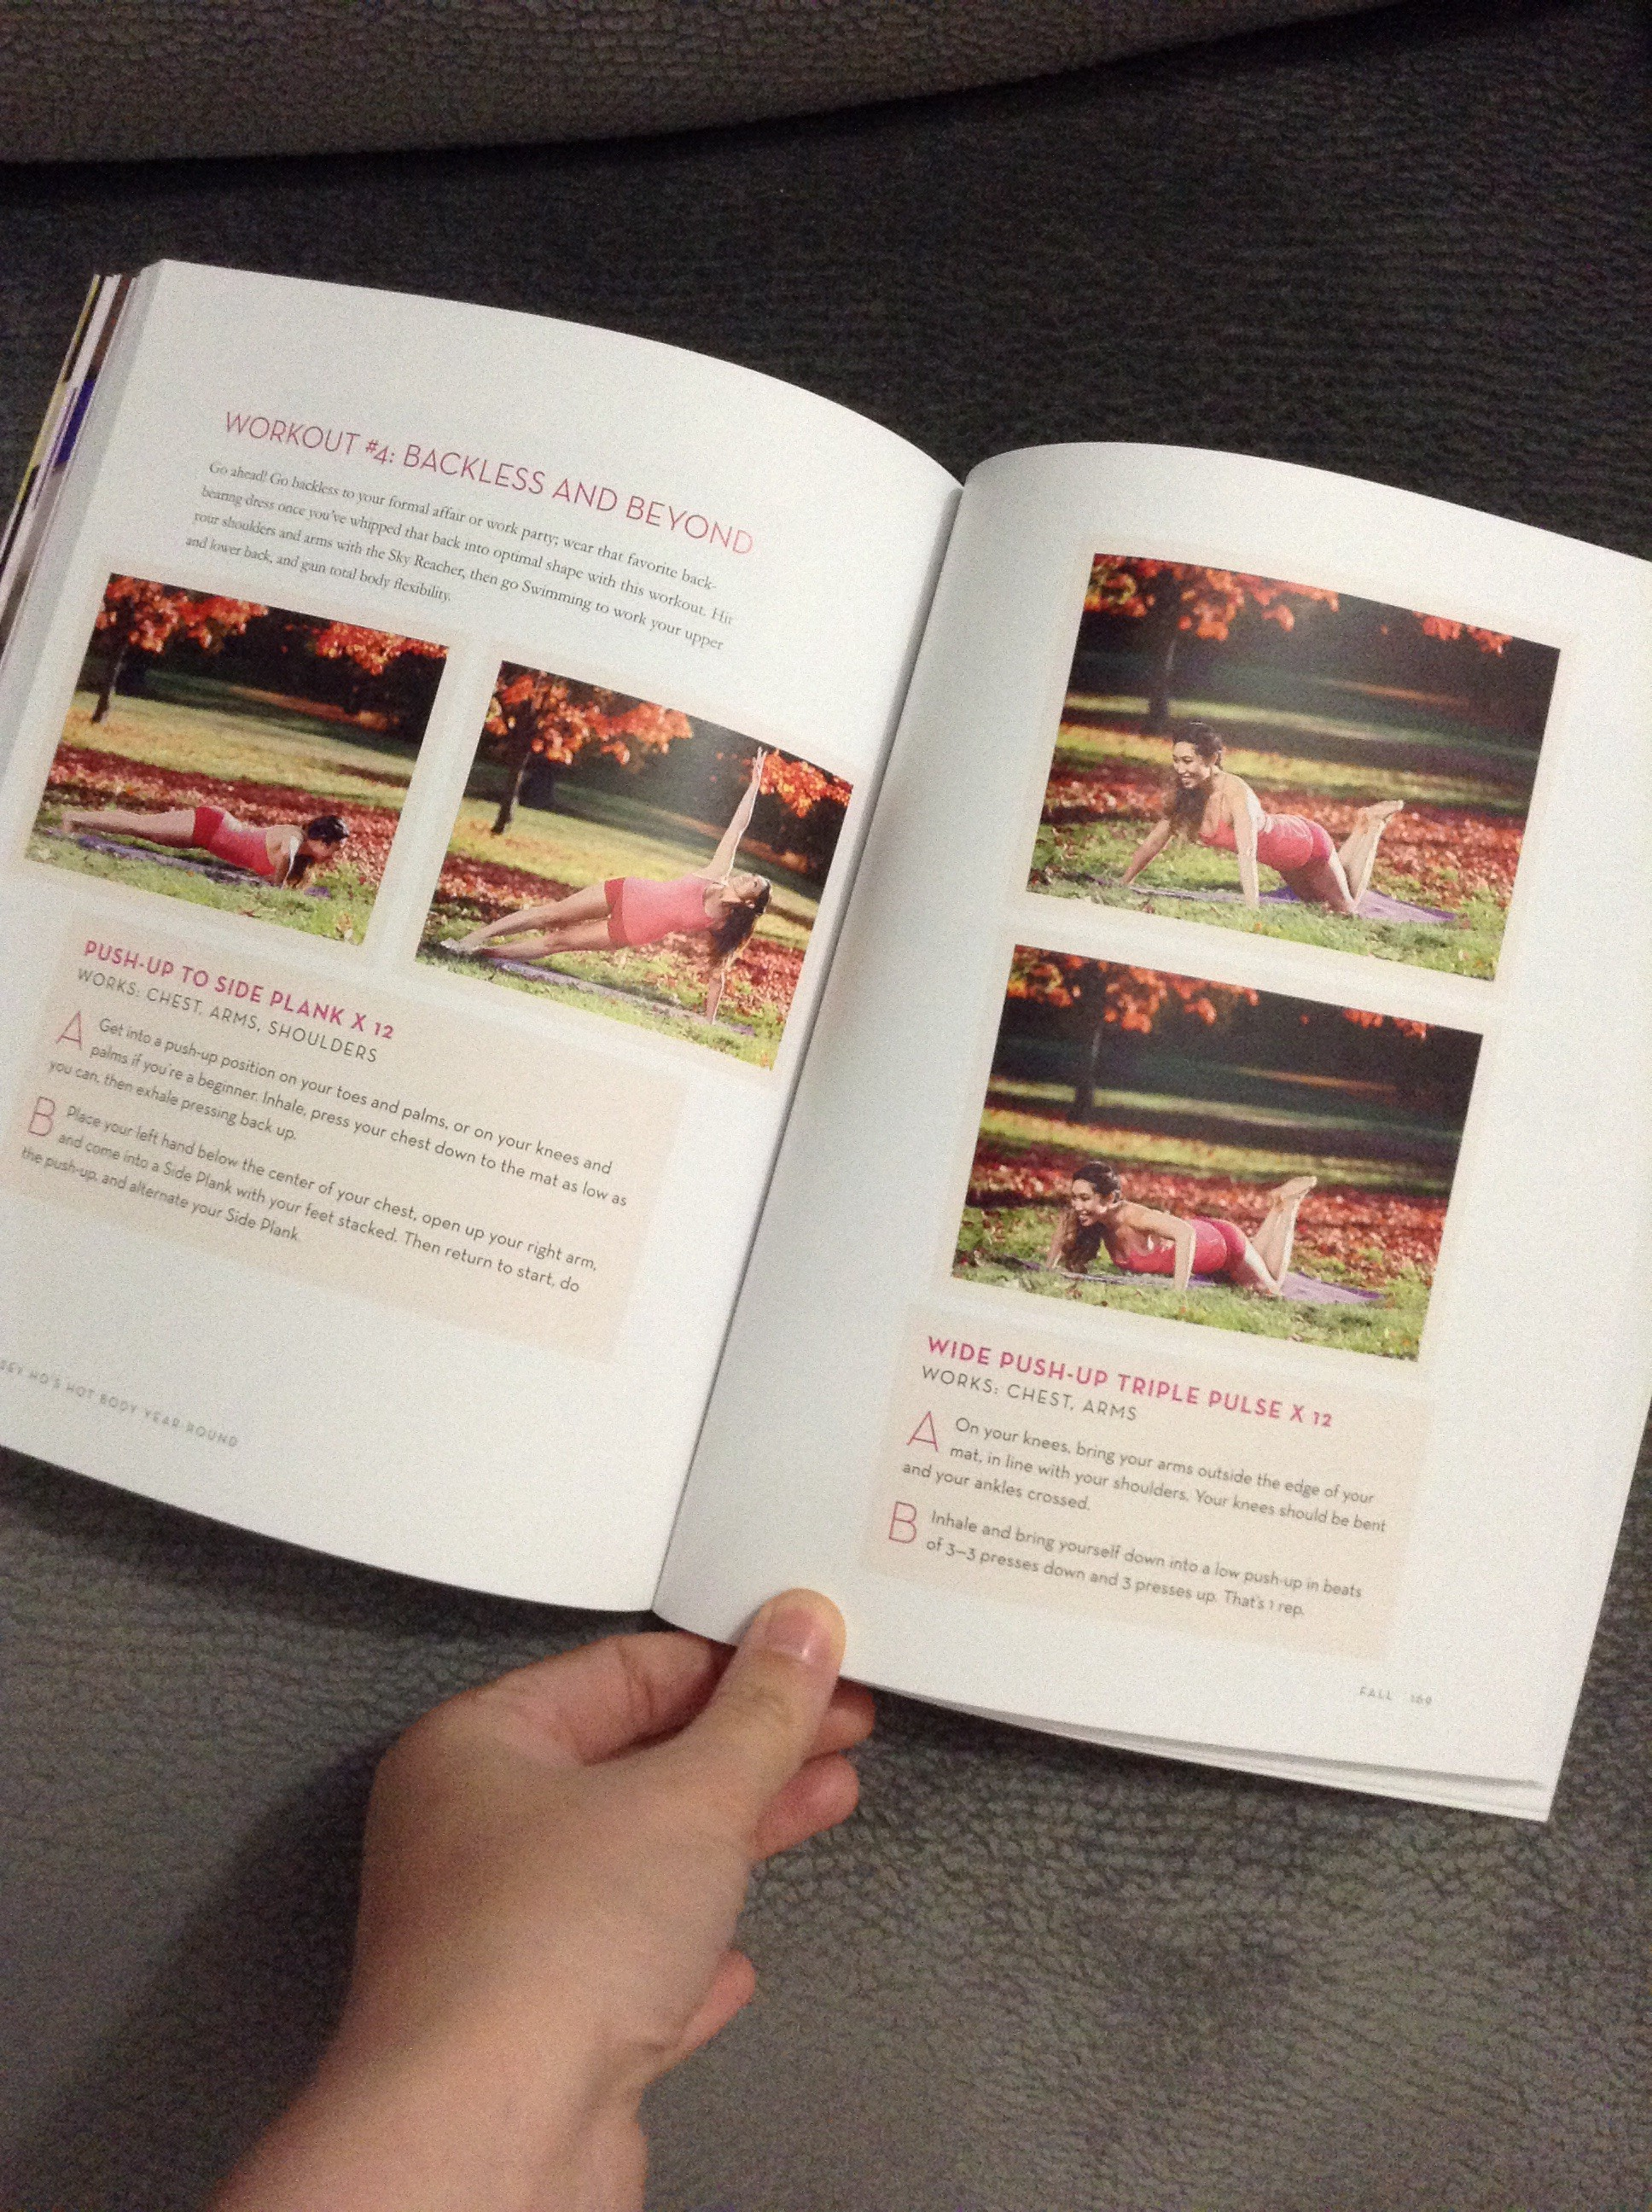 cassey ho u0027s body year round u2013 book review for workout